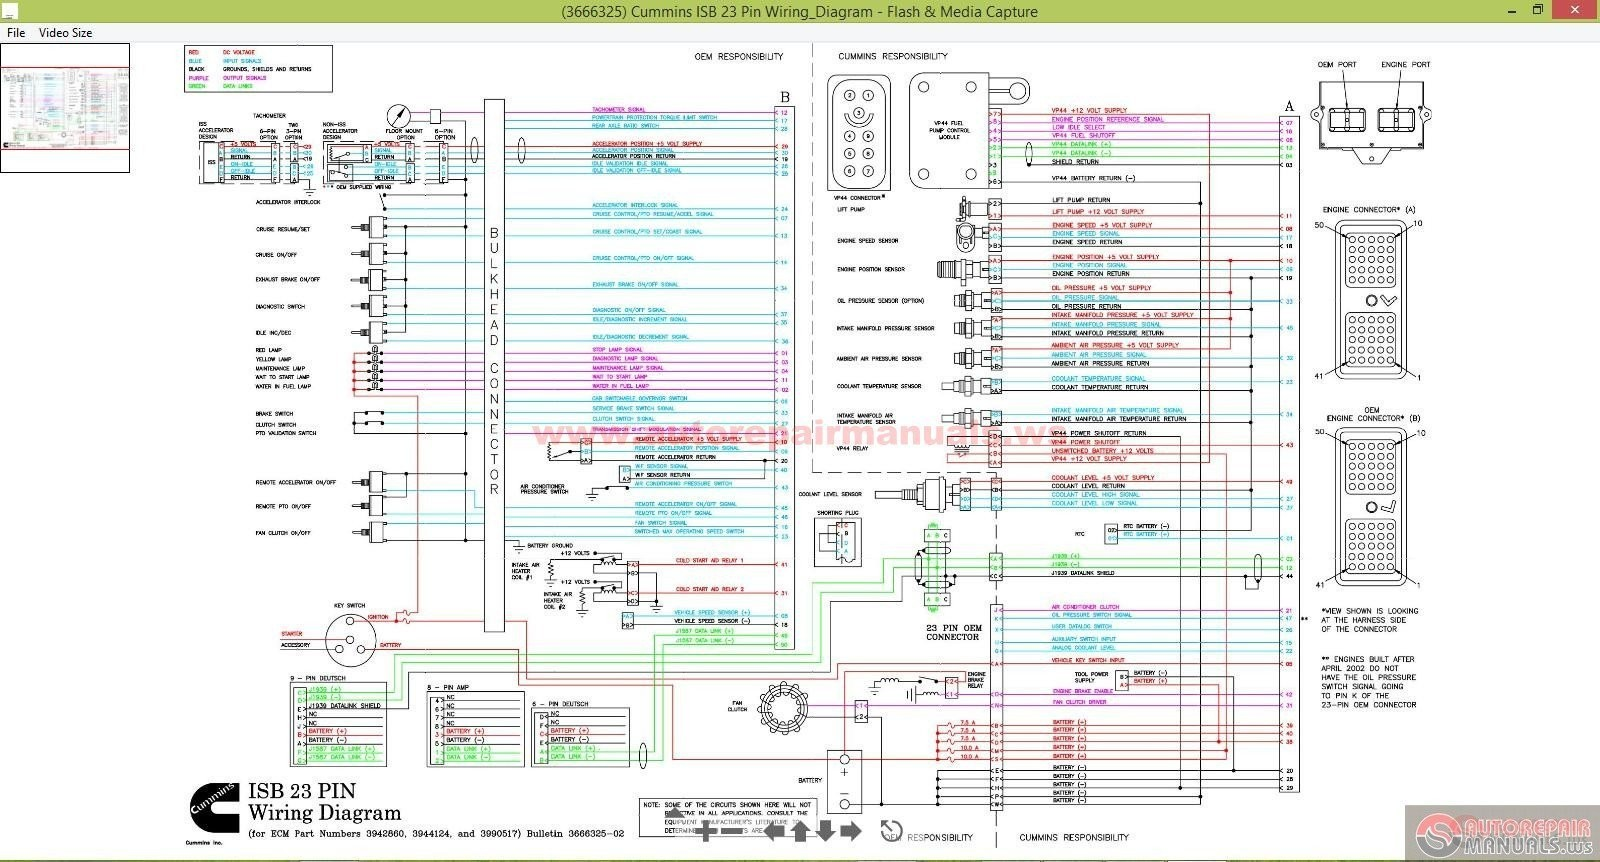 Wiring Diagrams Furthermore Caterpillar 3406e Engine Wiring Diagram